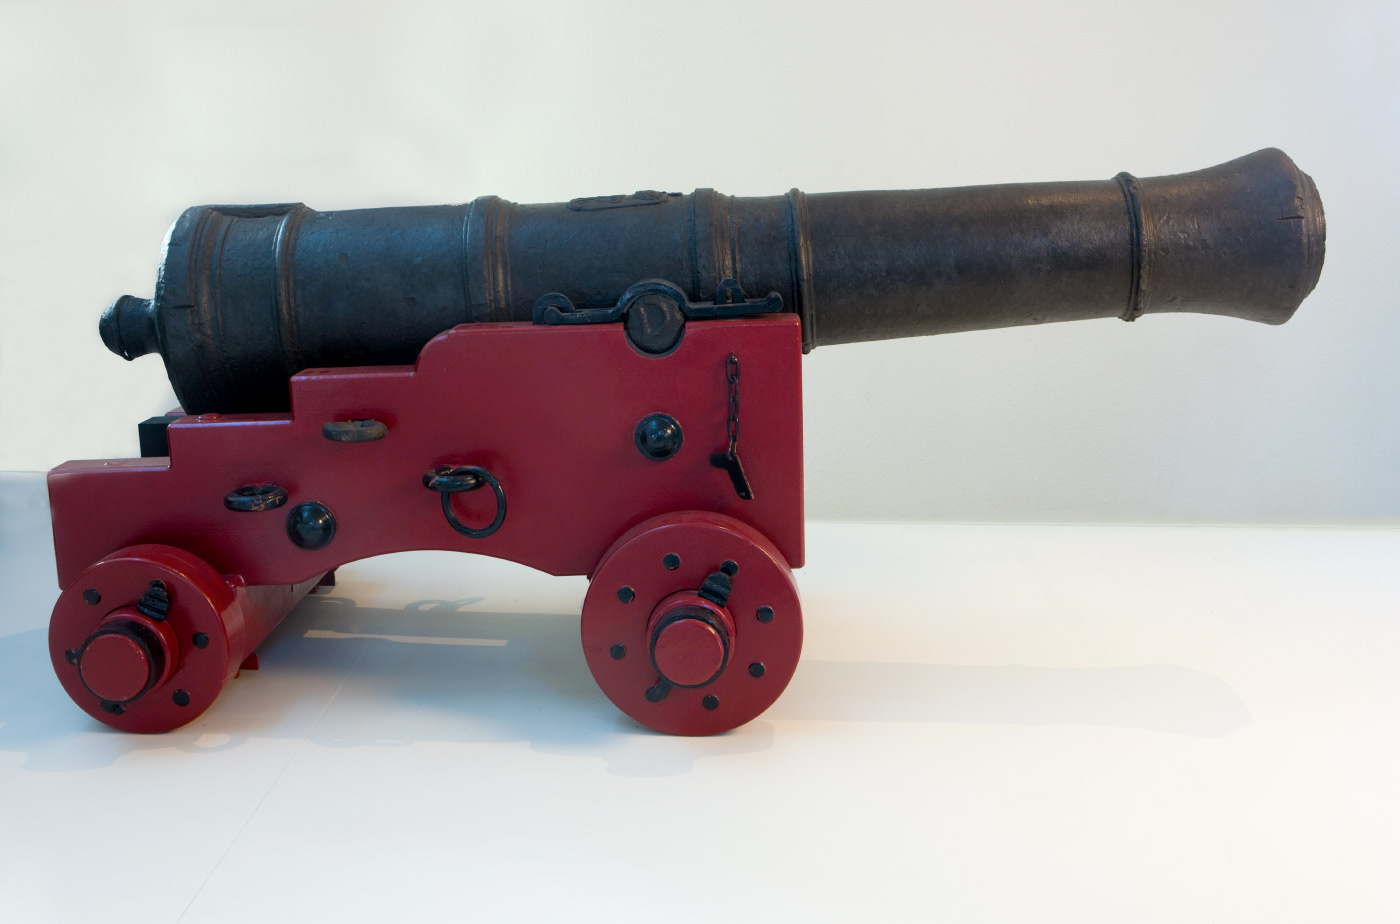 Colour photo of a cast-iron cannon mounted on a red base on wheels. - click to view larger image